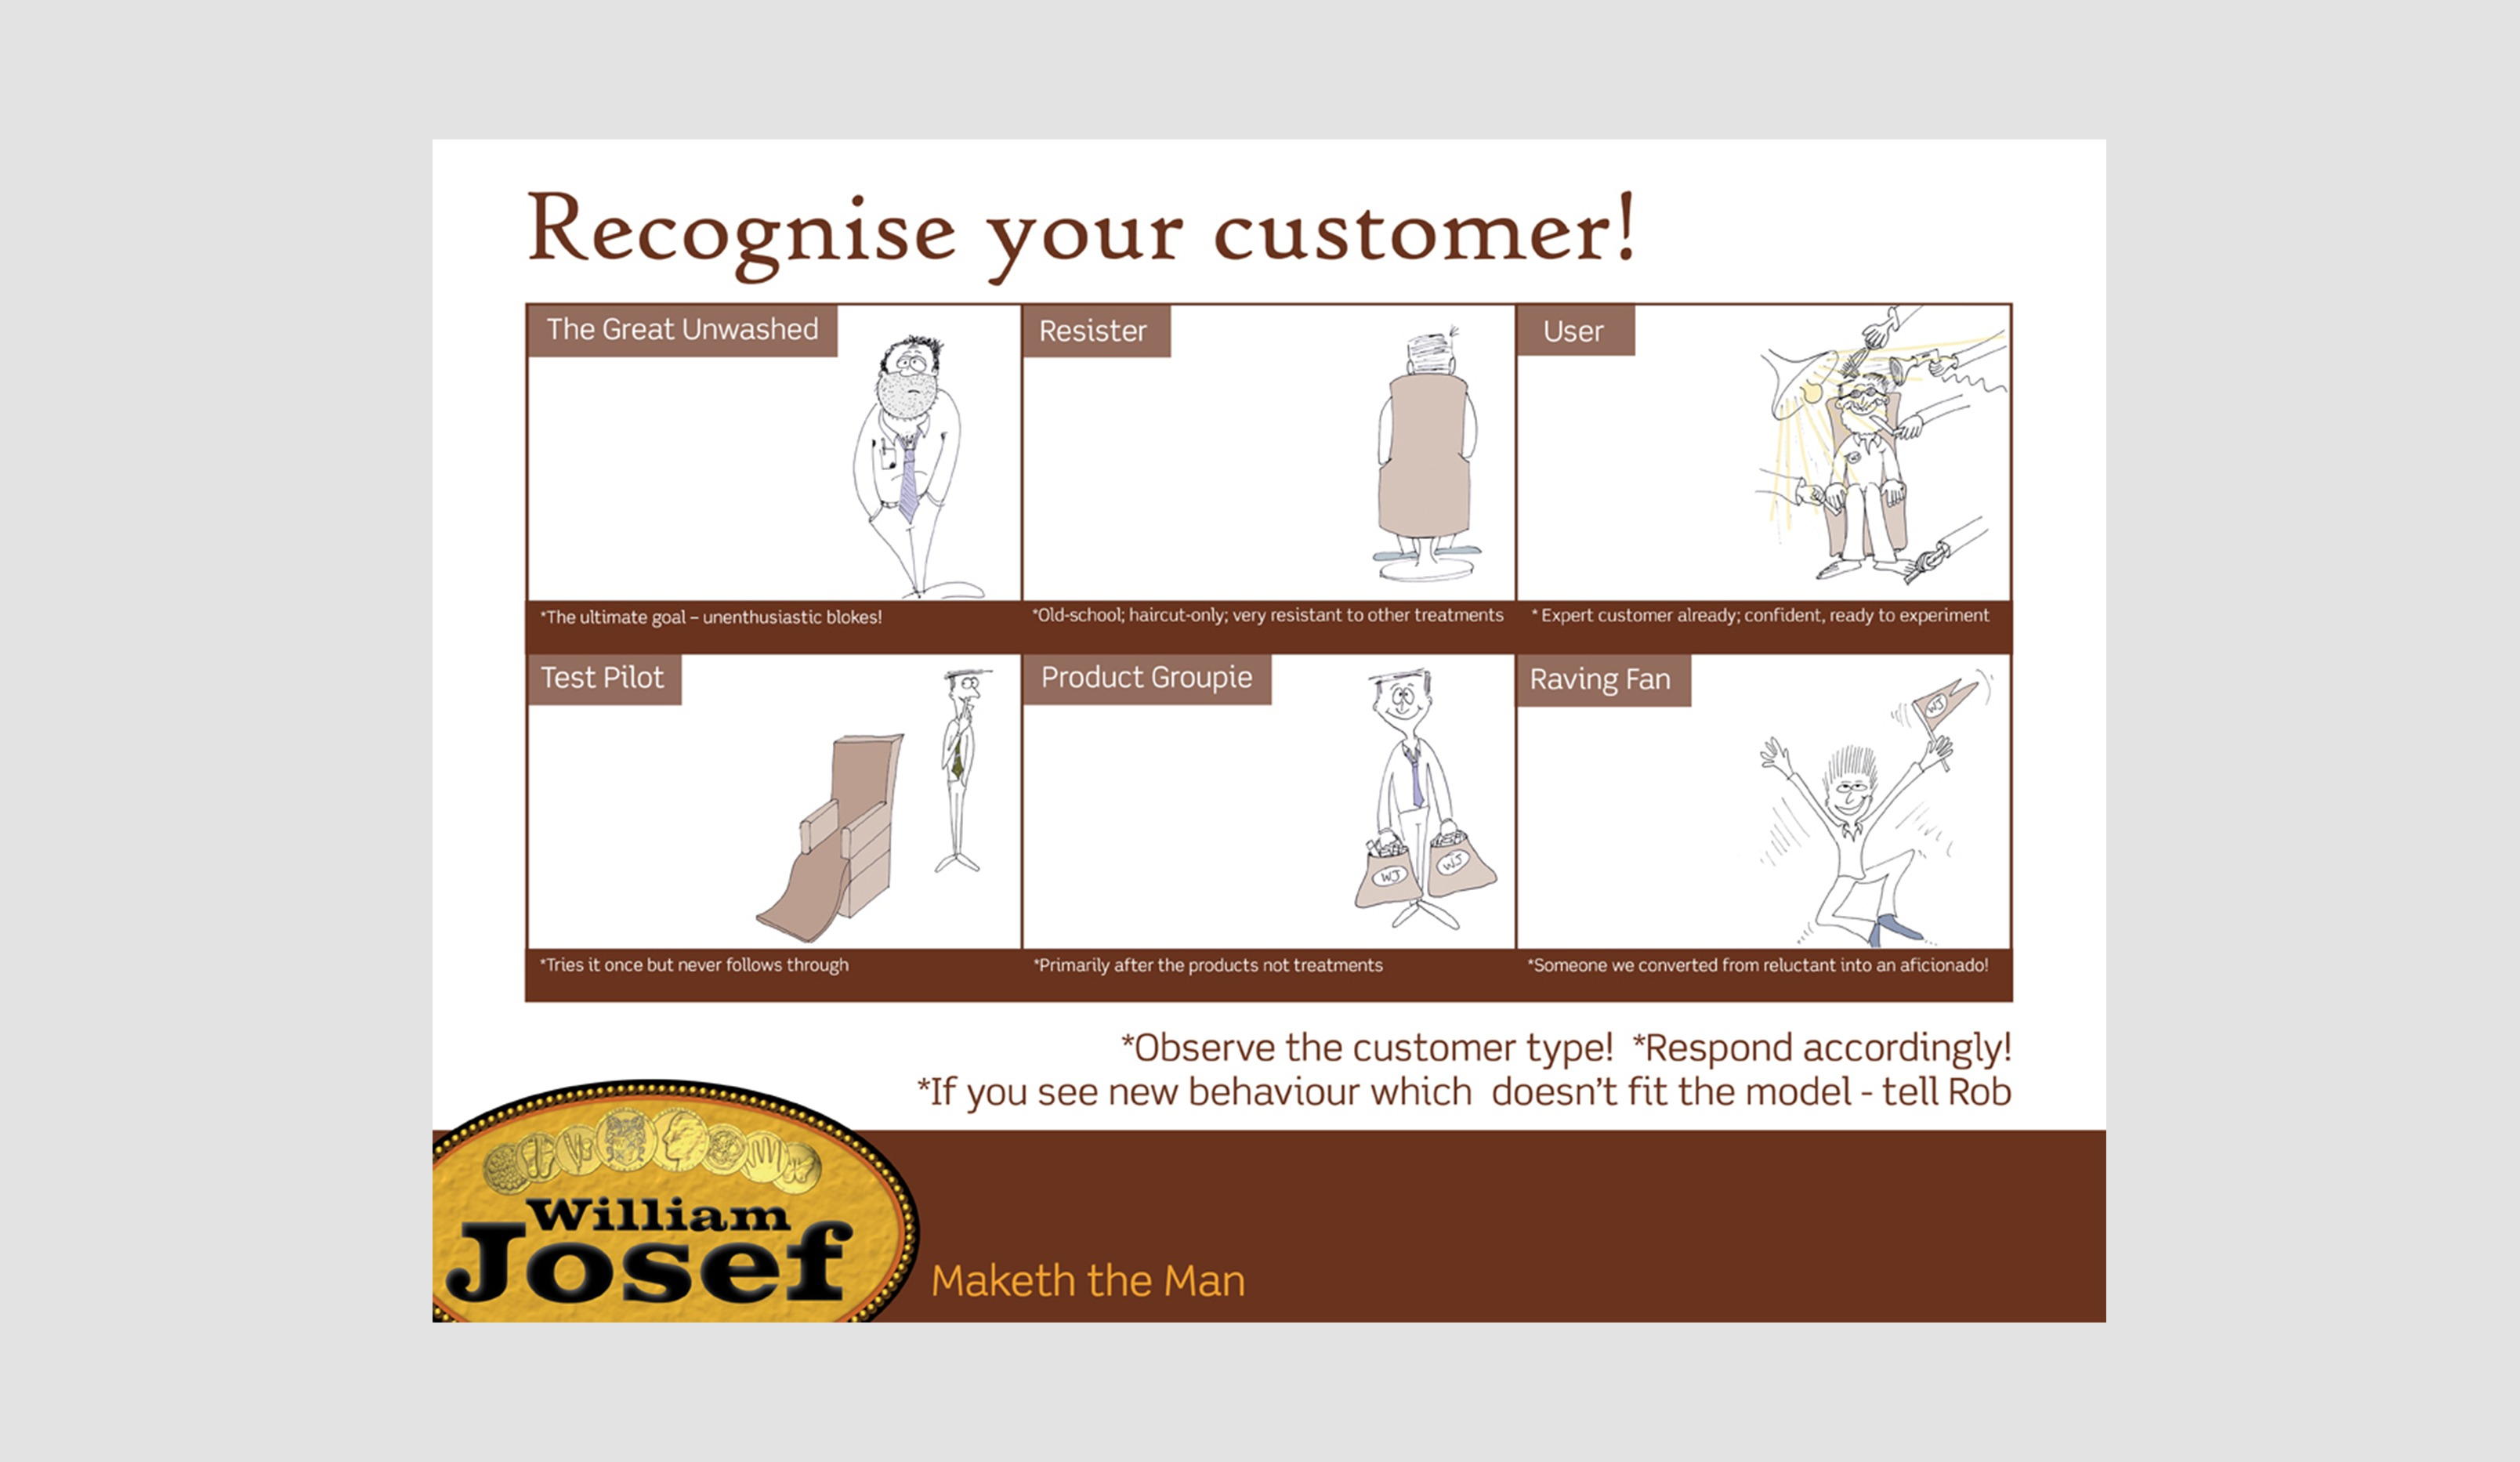 WJ-Stationary - recognise your customer